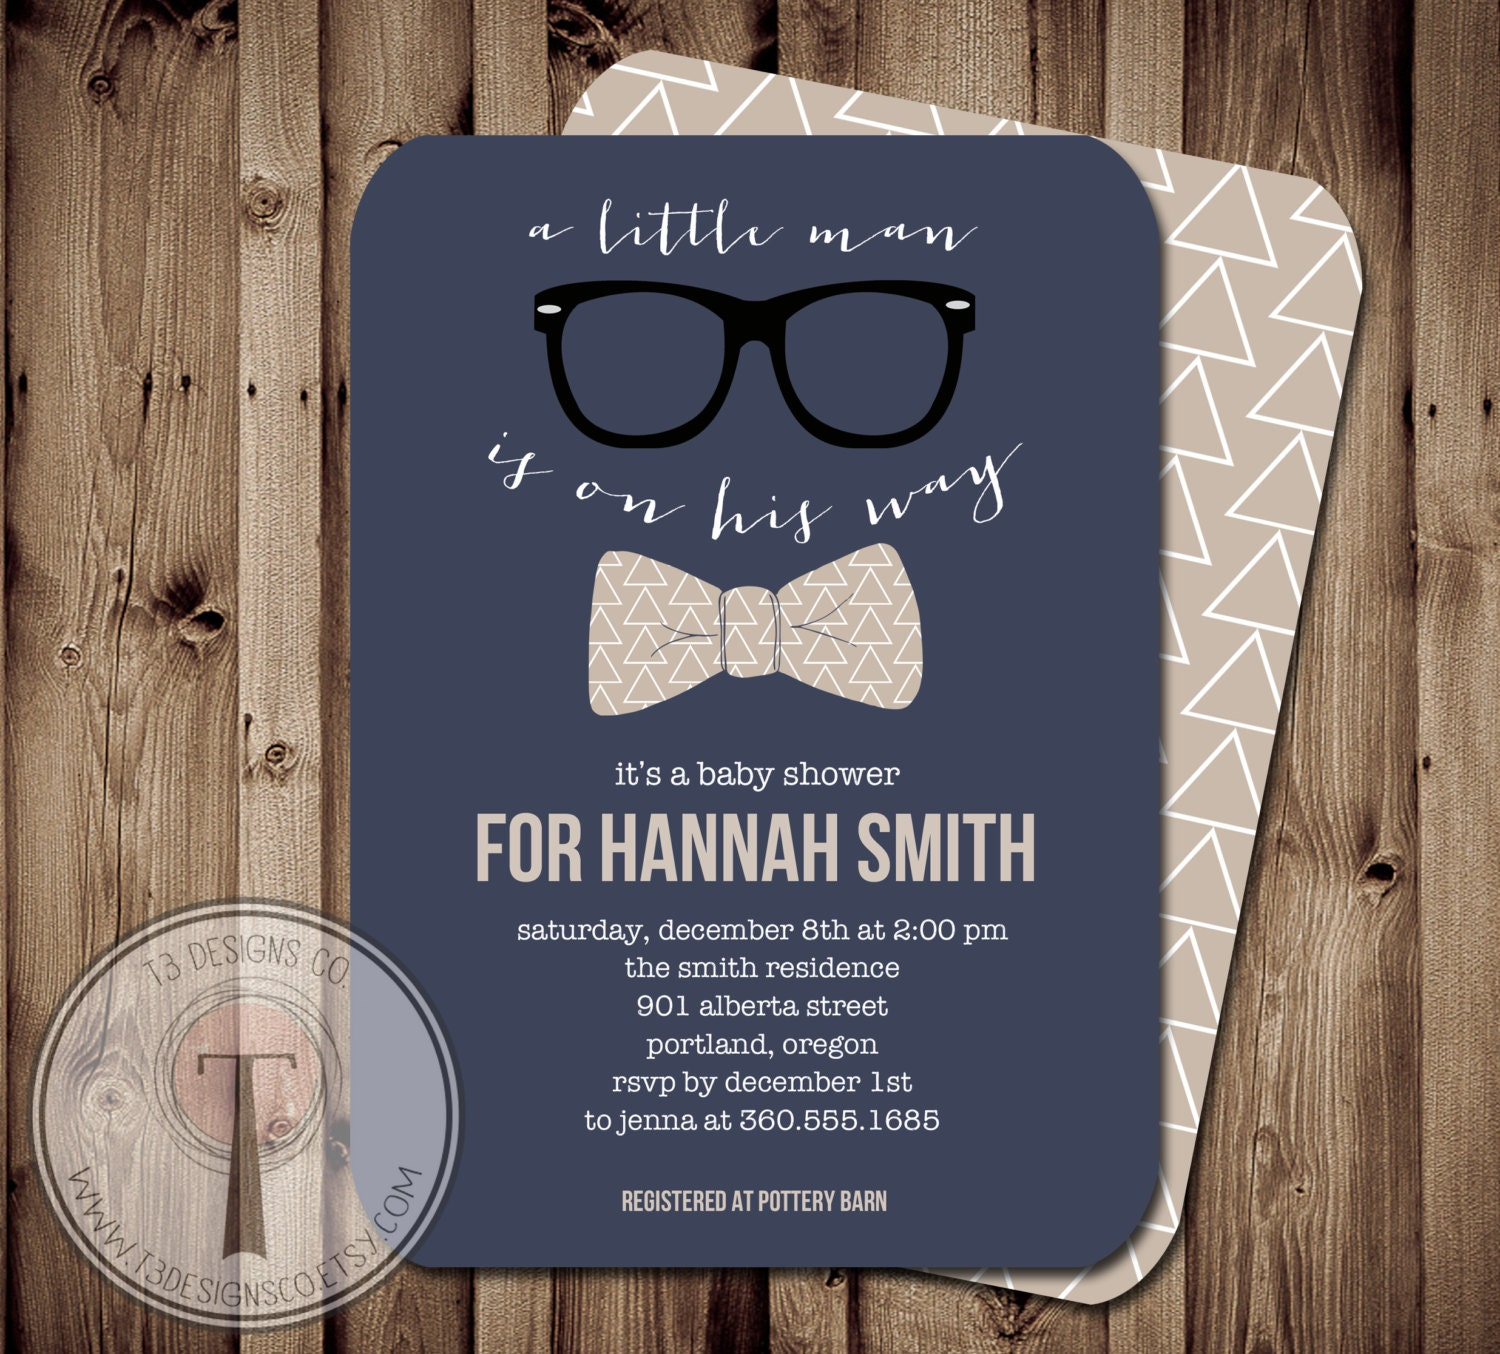 Little Man Baby Shower Invitation, Bow Tie Baby Shower, Bow Tie ...